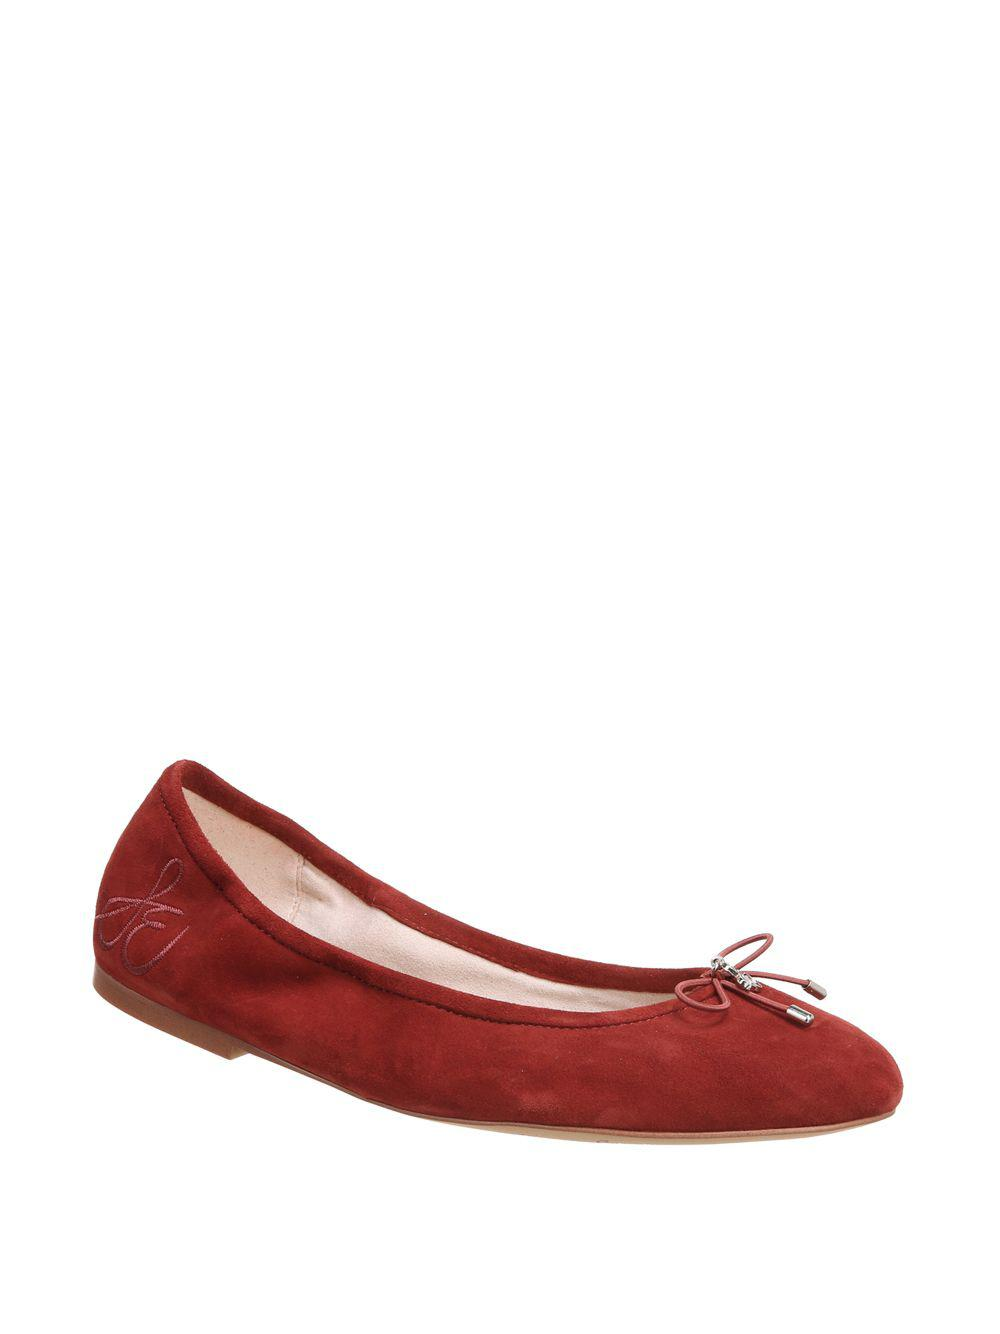 5f4256960e1a Lyst - Sam Edelman Felicia Suede Ballet Flats in Red